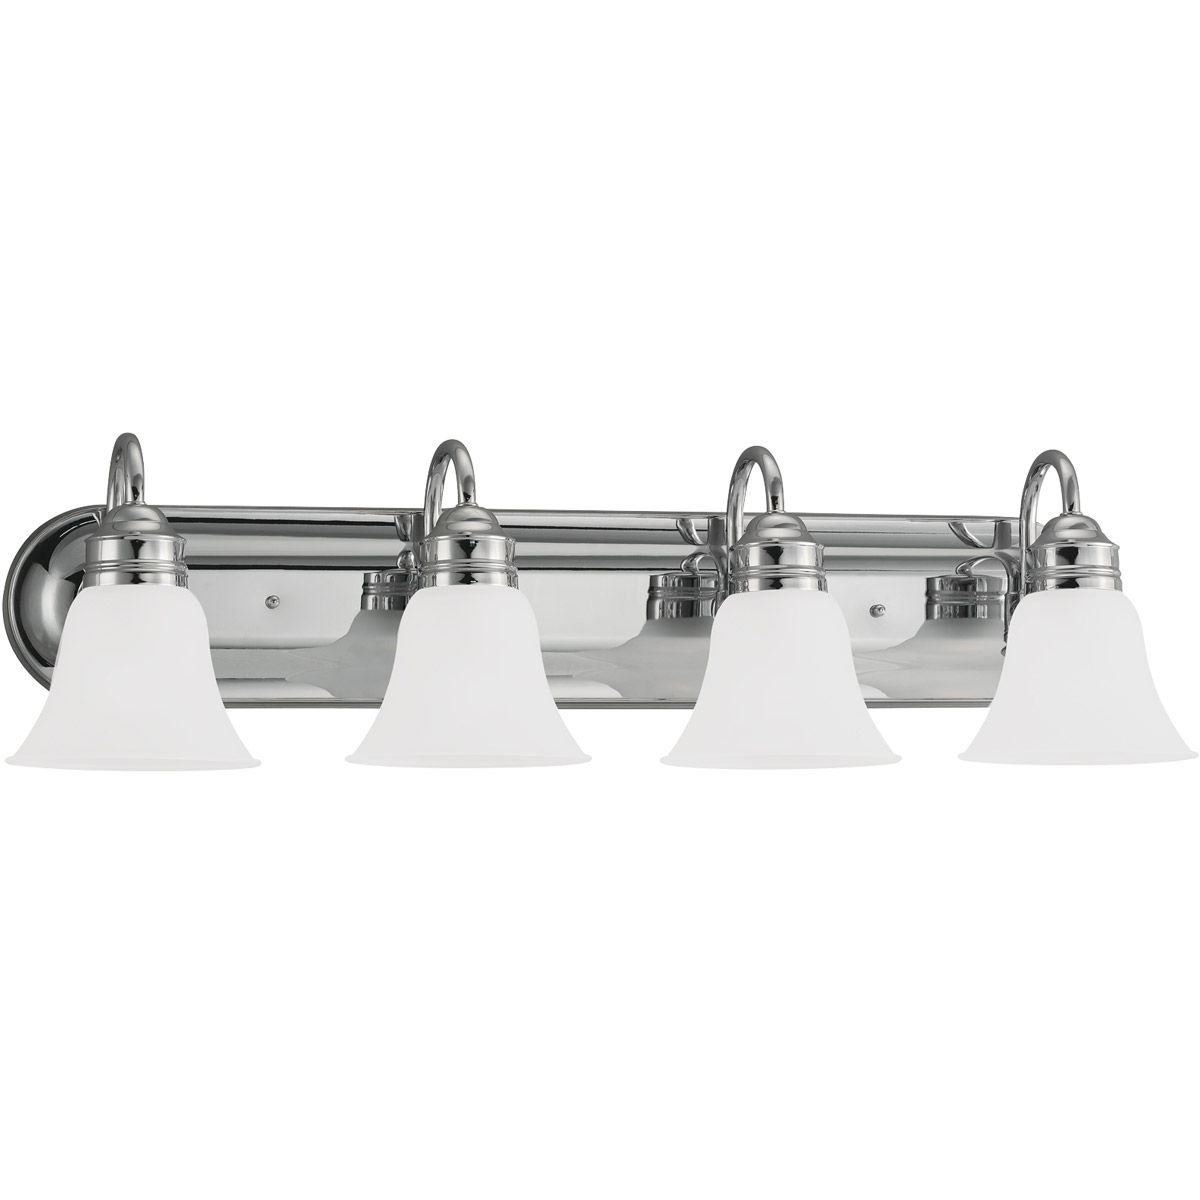 Sea Gull Lighting Gladstone 4 Light Bath Vanity in Chrome 44853-05 photo